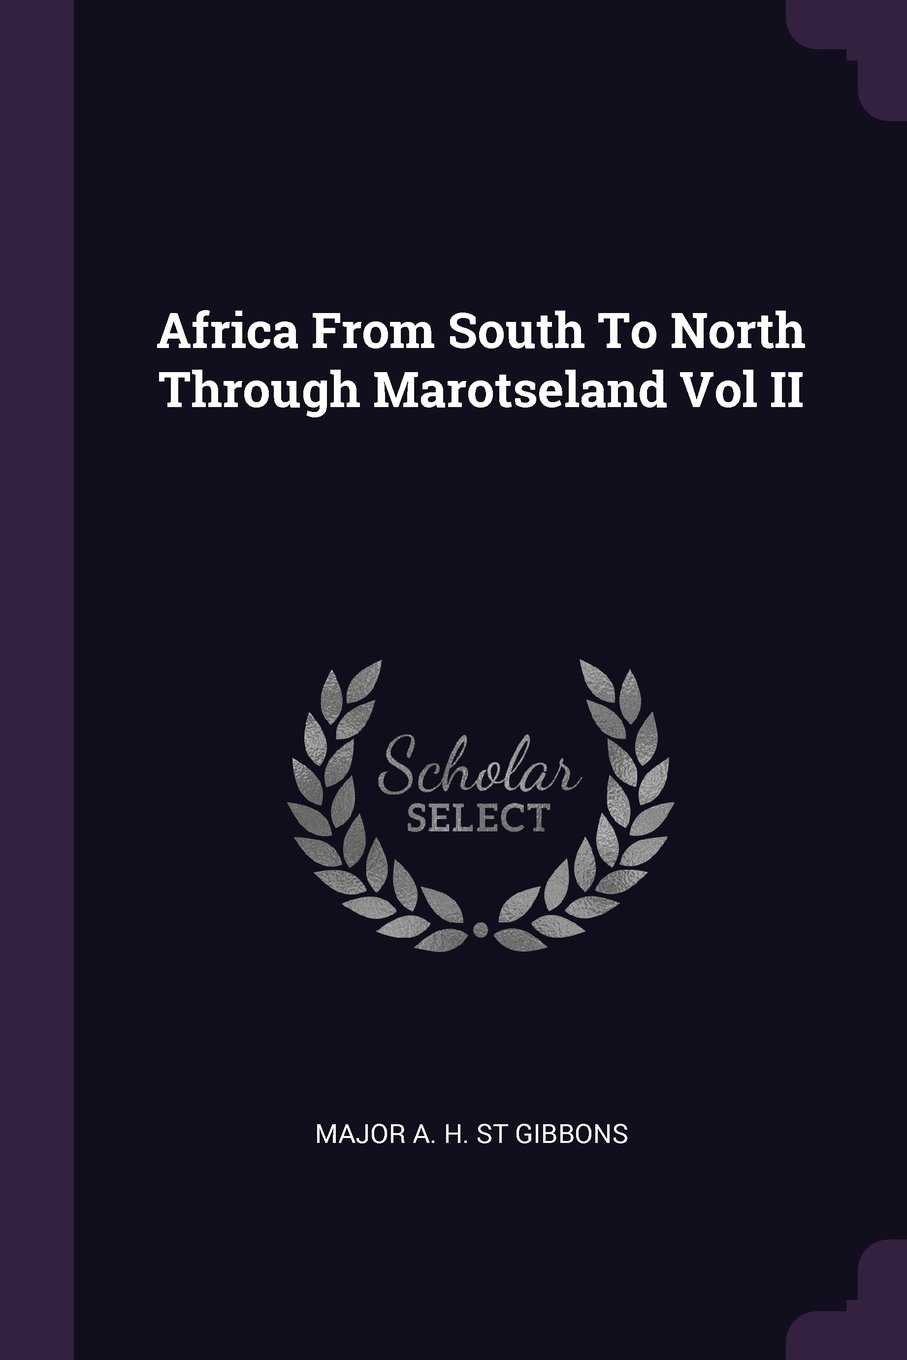 Africa From South To North Through Marotseland Vol II PDF